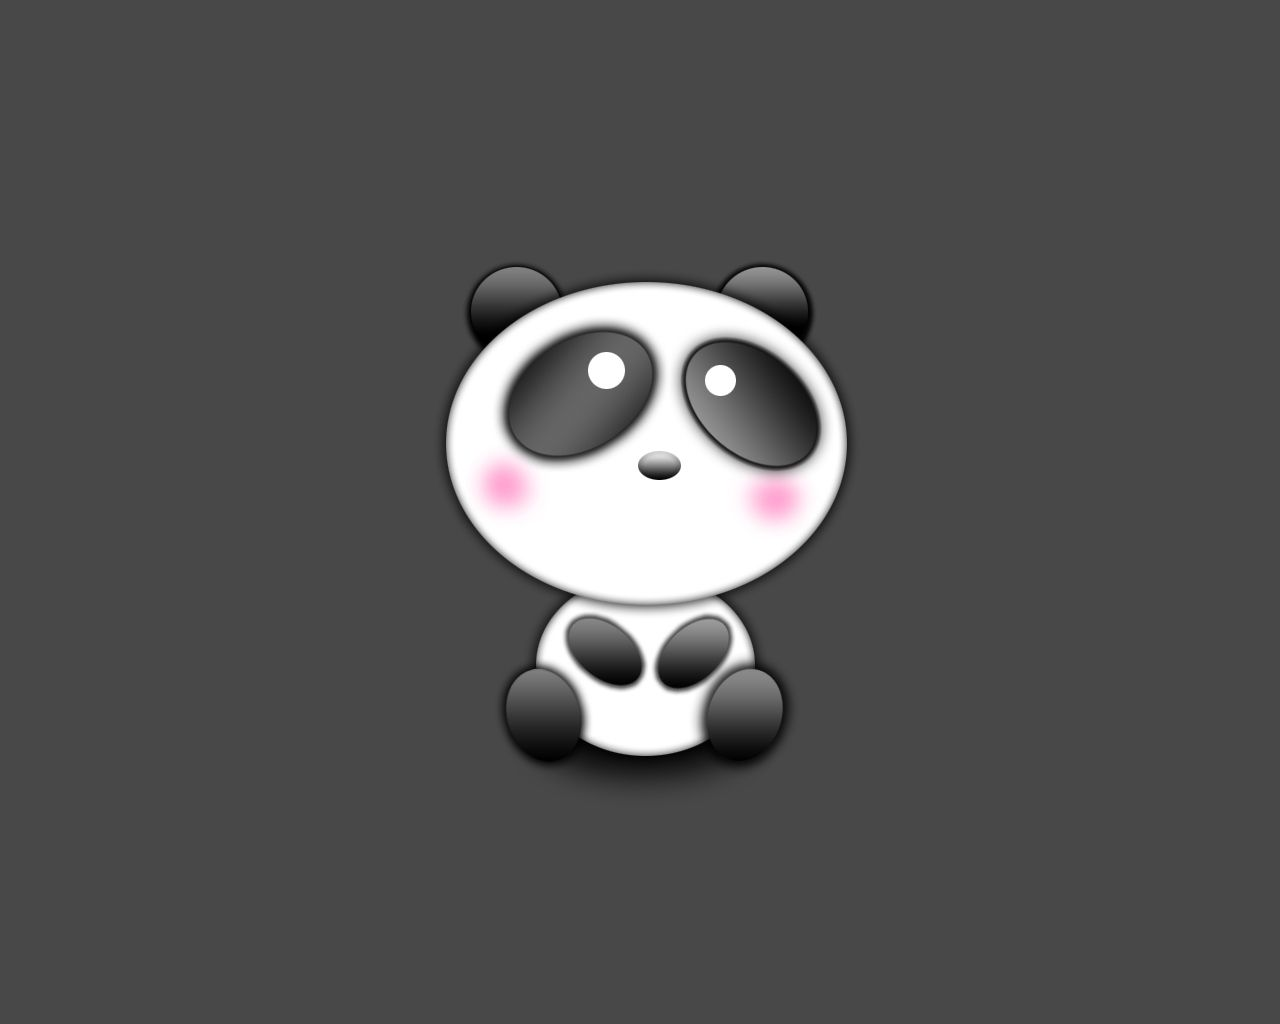 Cute Panda Wallpaper Background HD Desktop Wallpaper, Instagram ...